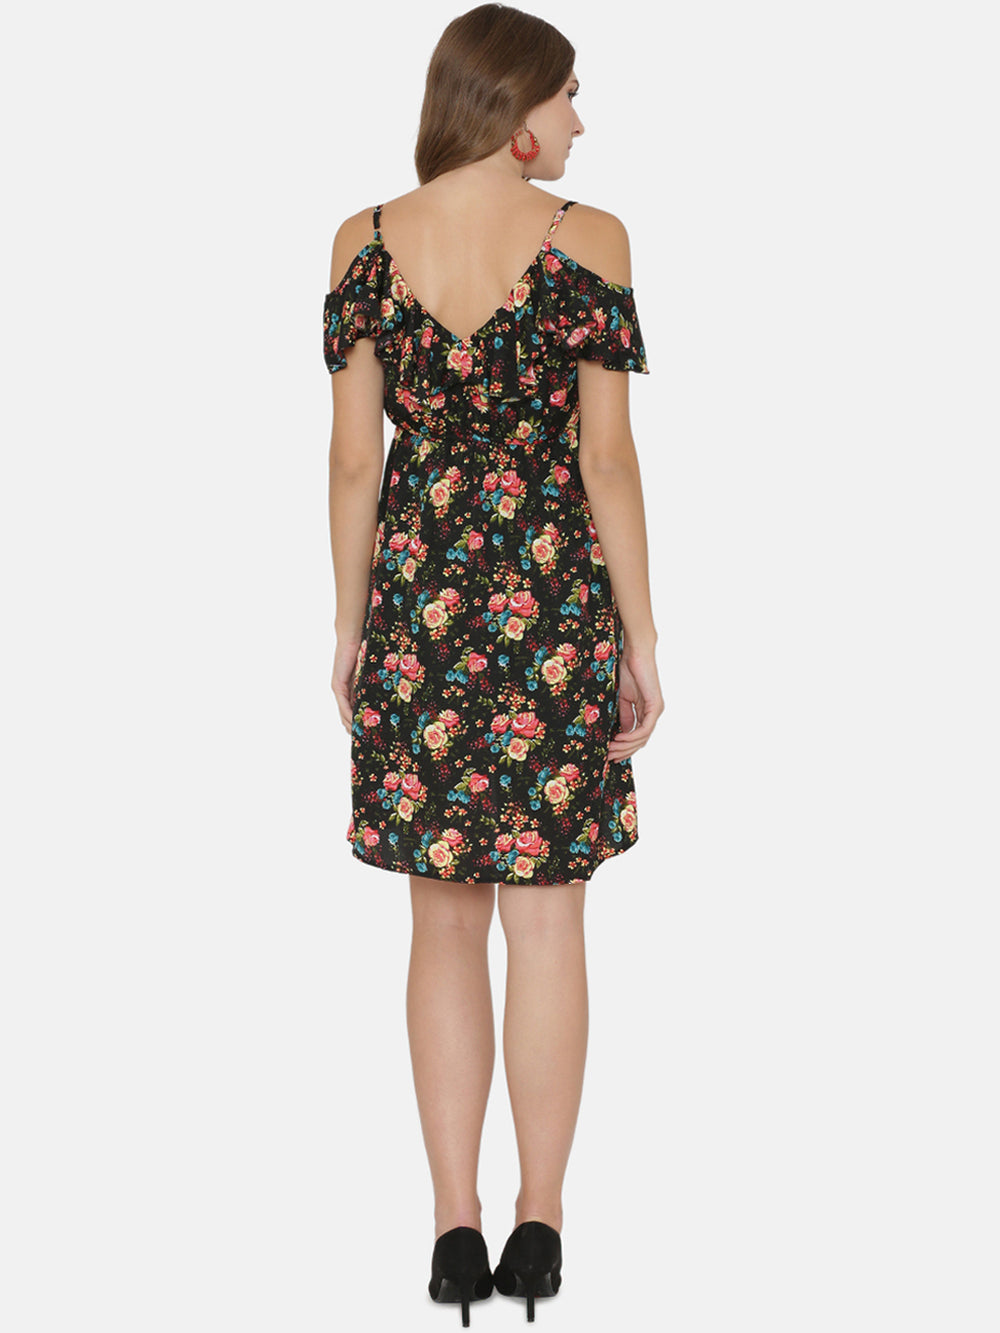 eyelet Women Black Printed Empire Dress